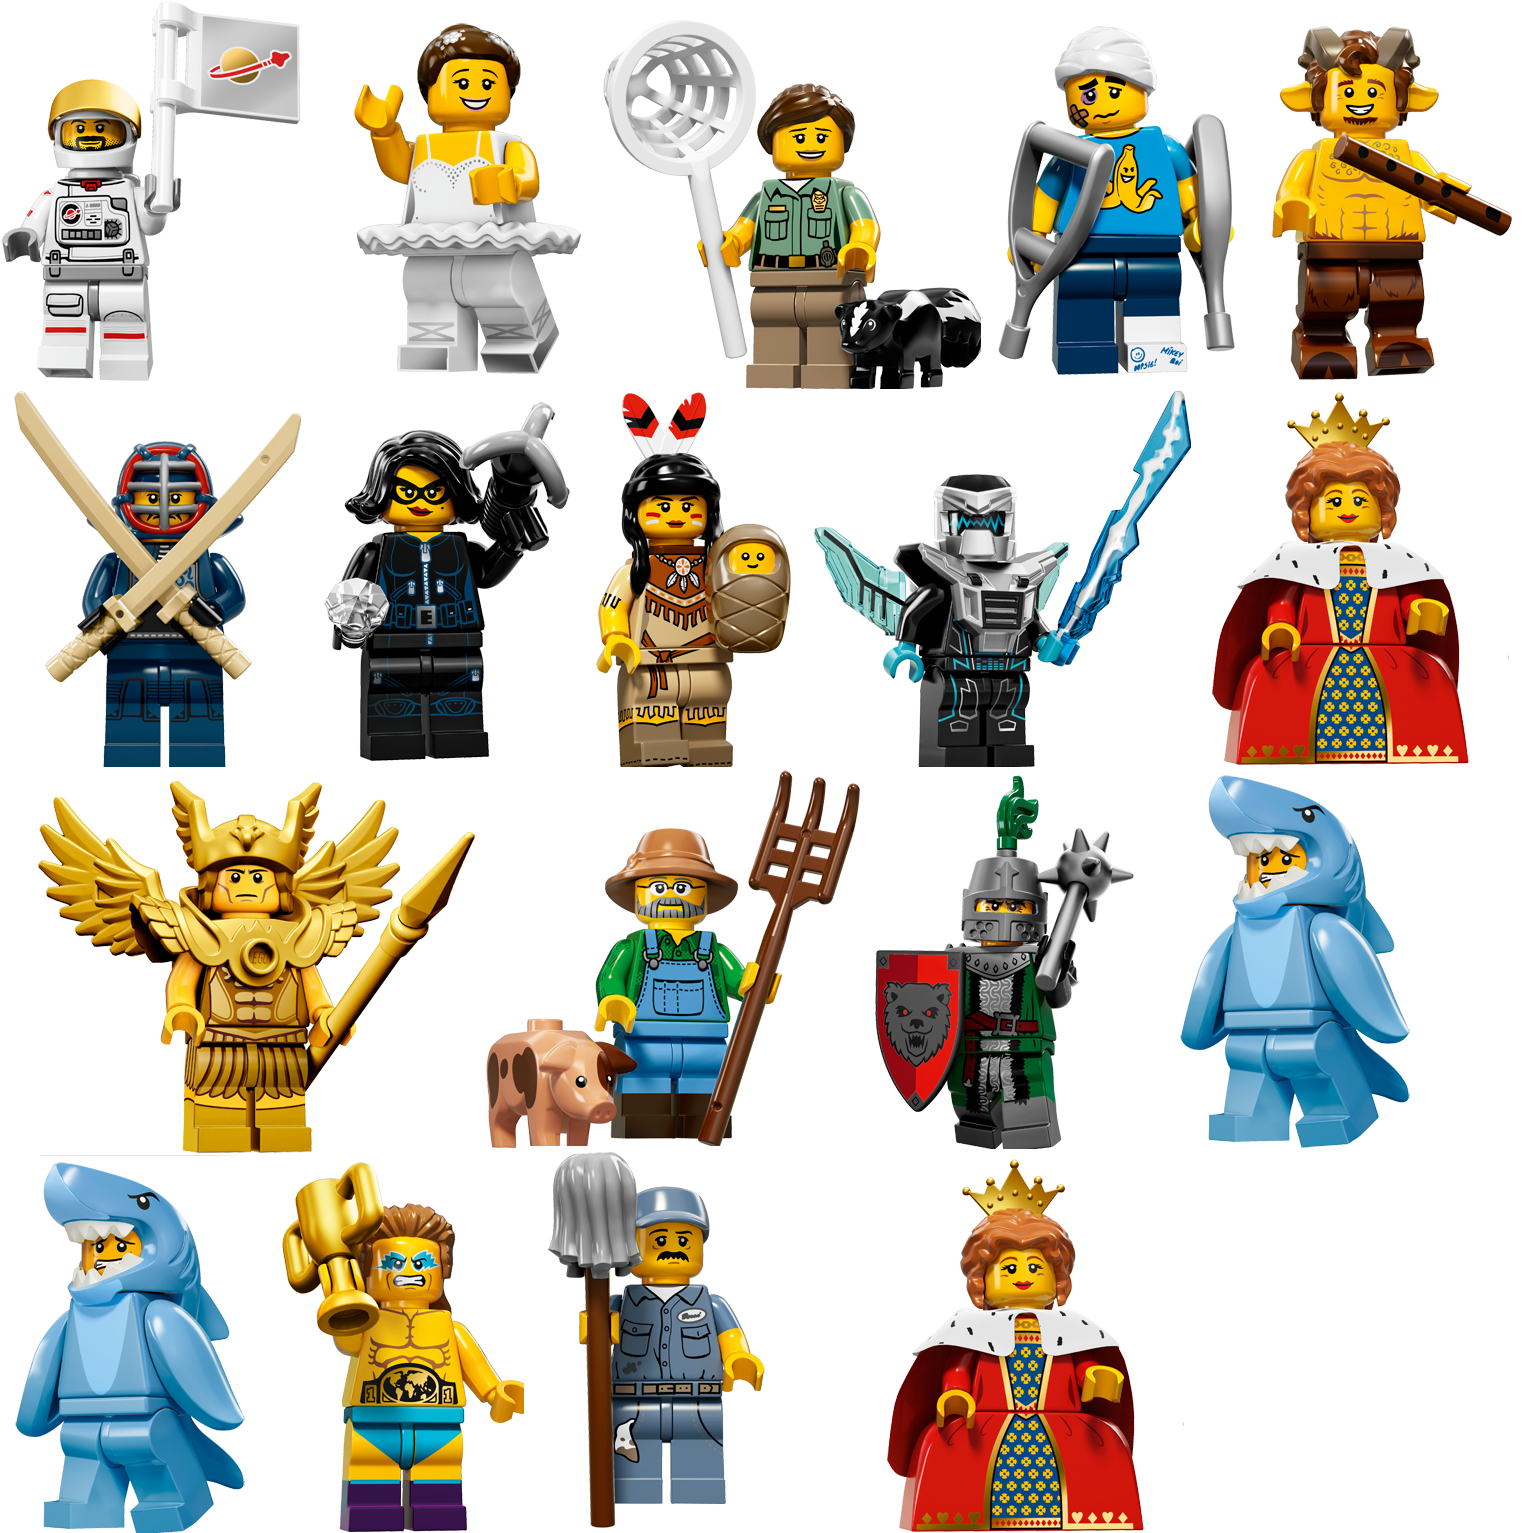 Lego Series 15 is now available on the Lego Shop at Home ...